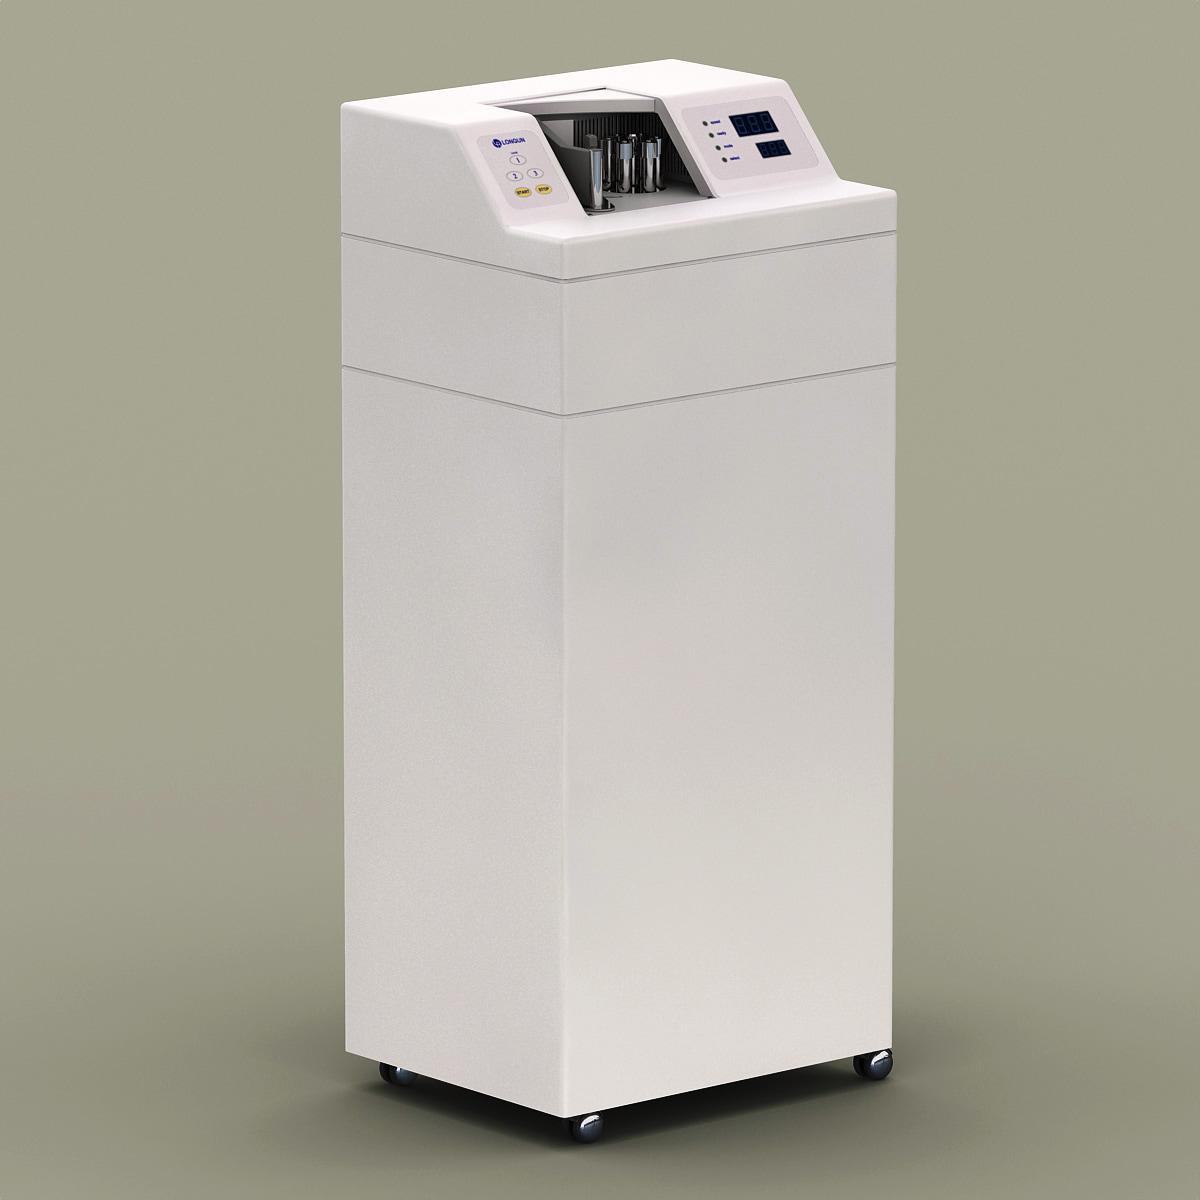 Currency_Counter_LR-E18_Vacuum_001.jpg